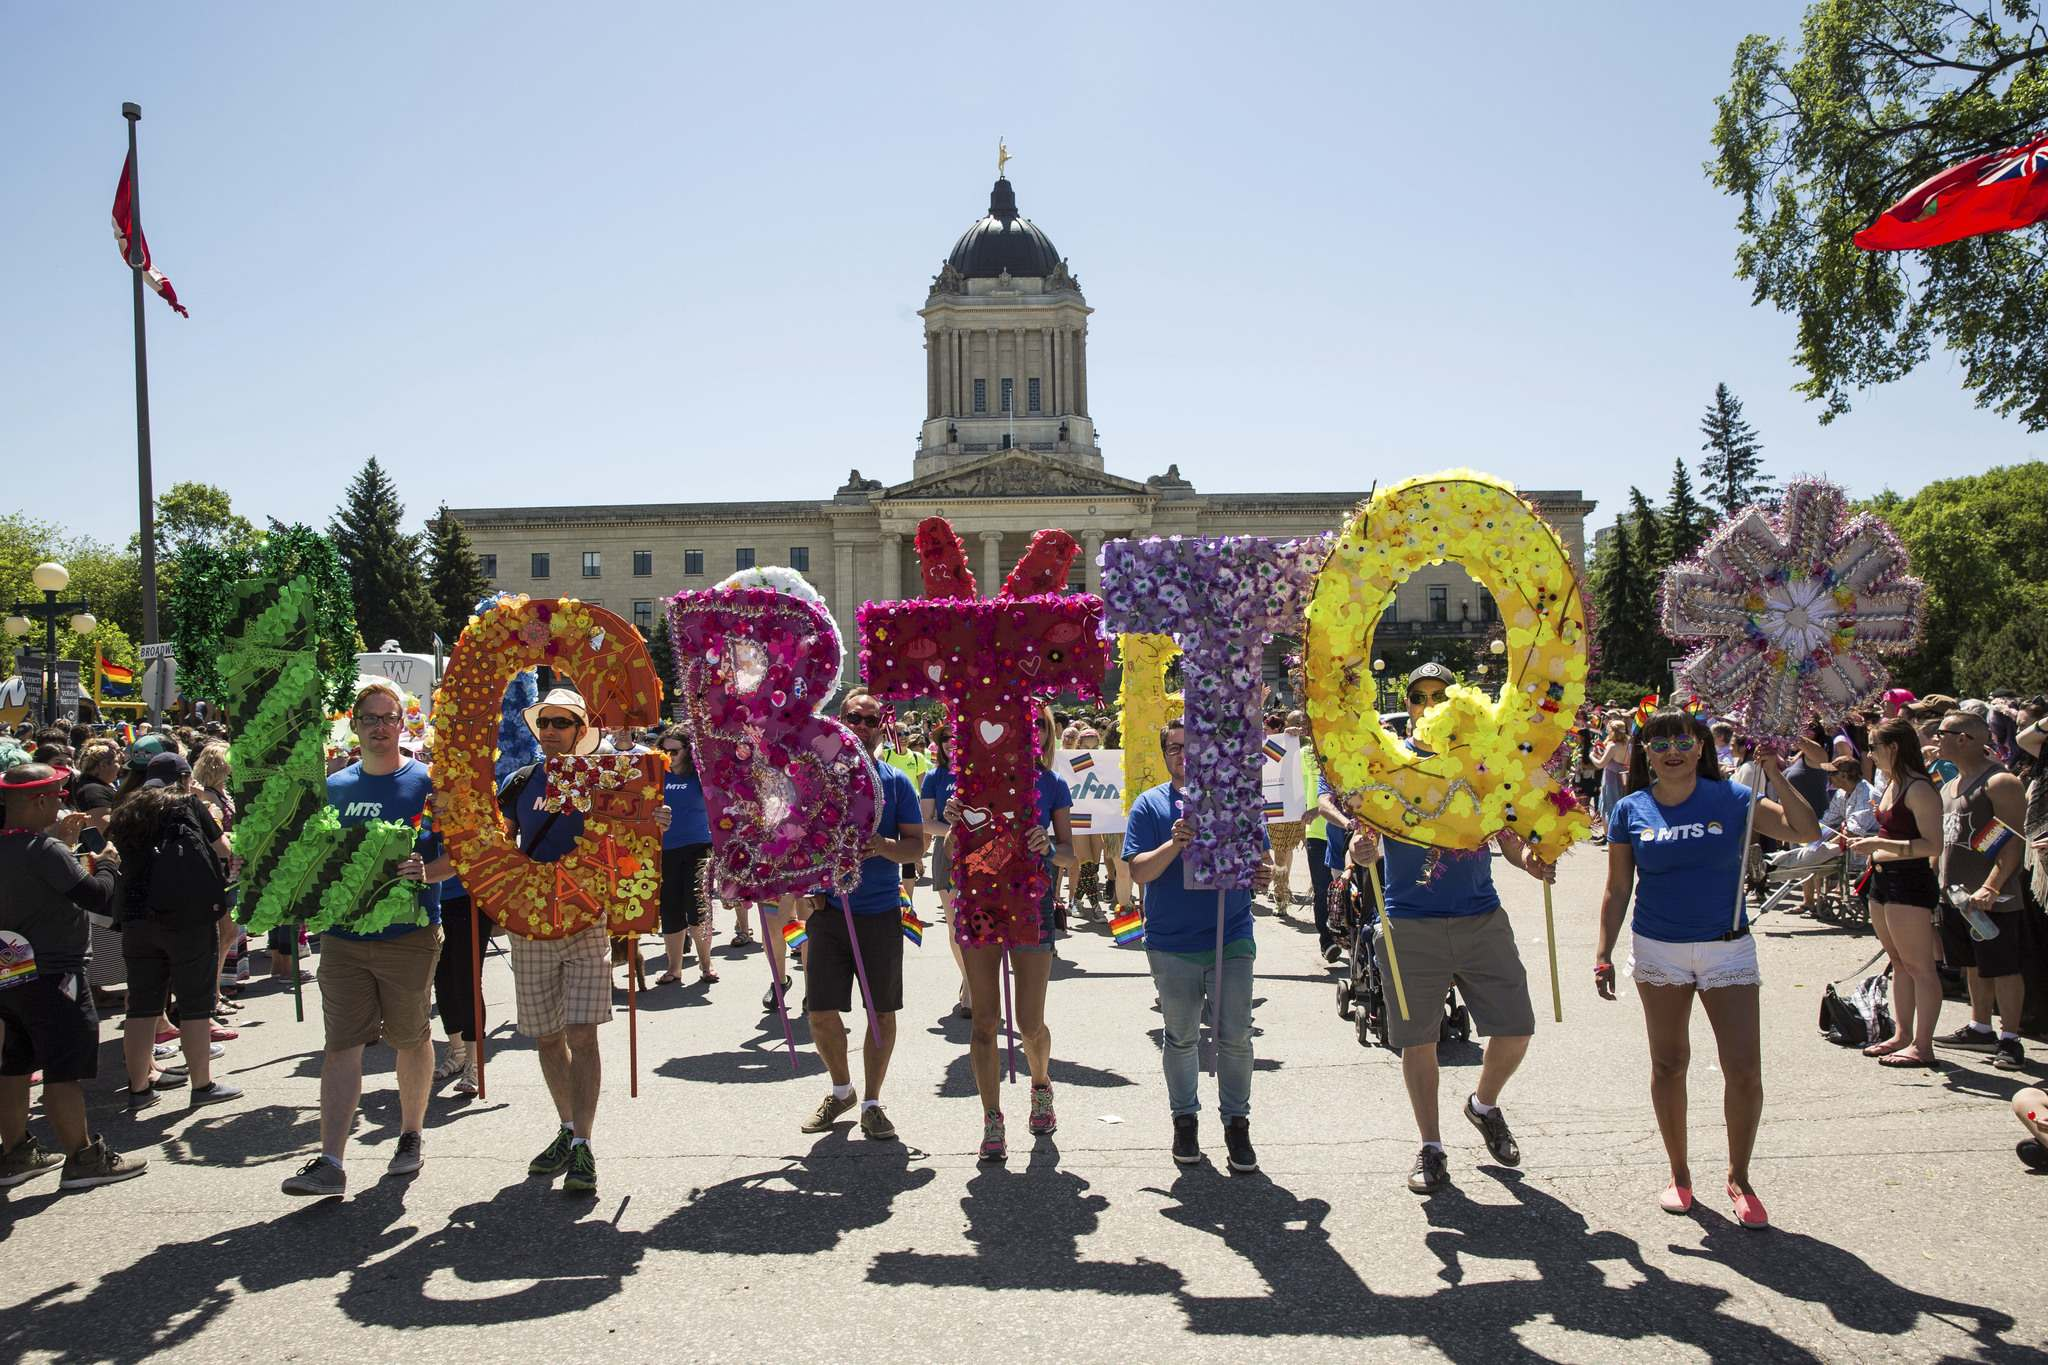 Participants in the 2016 Pride parade. (Mike Deal / Winnipeg Free Press files)</p>